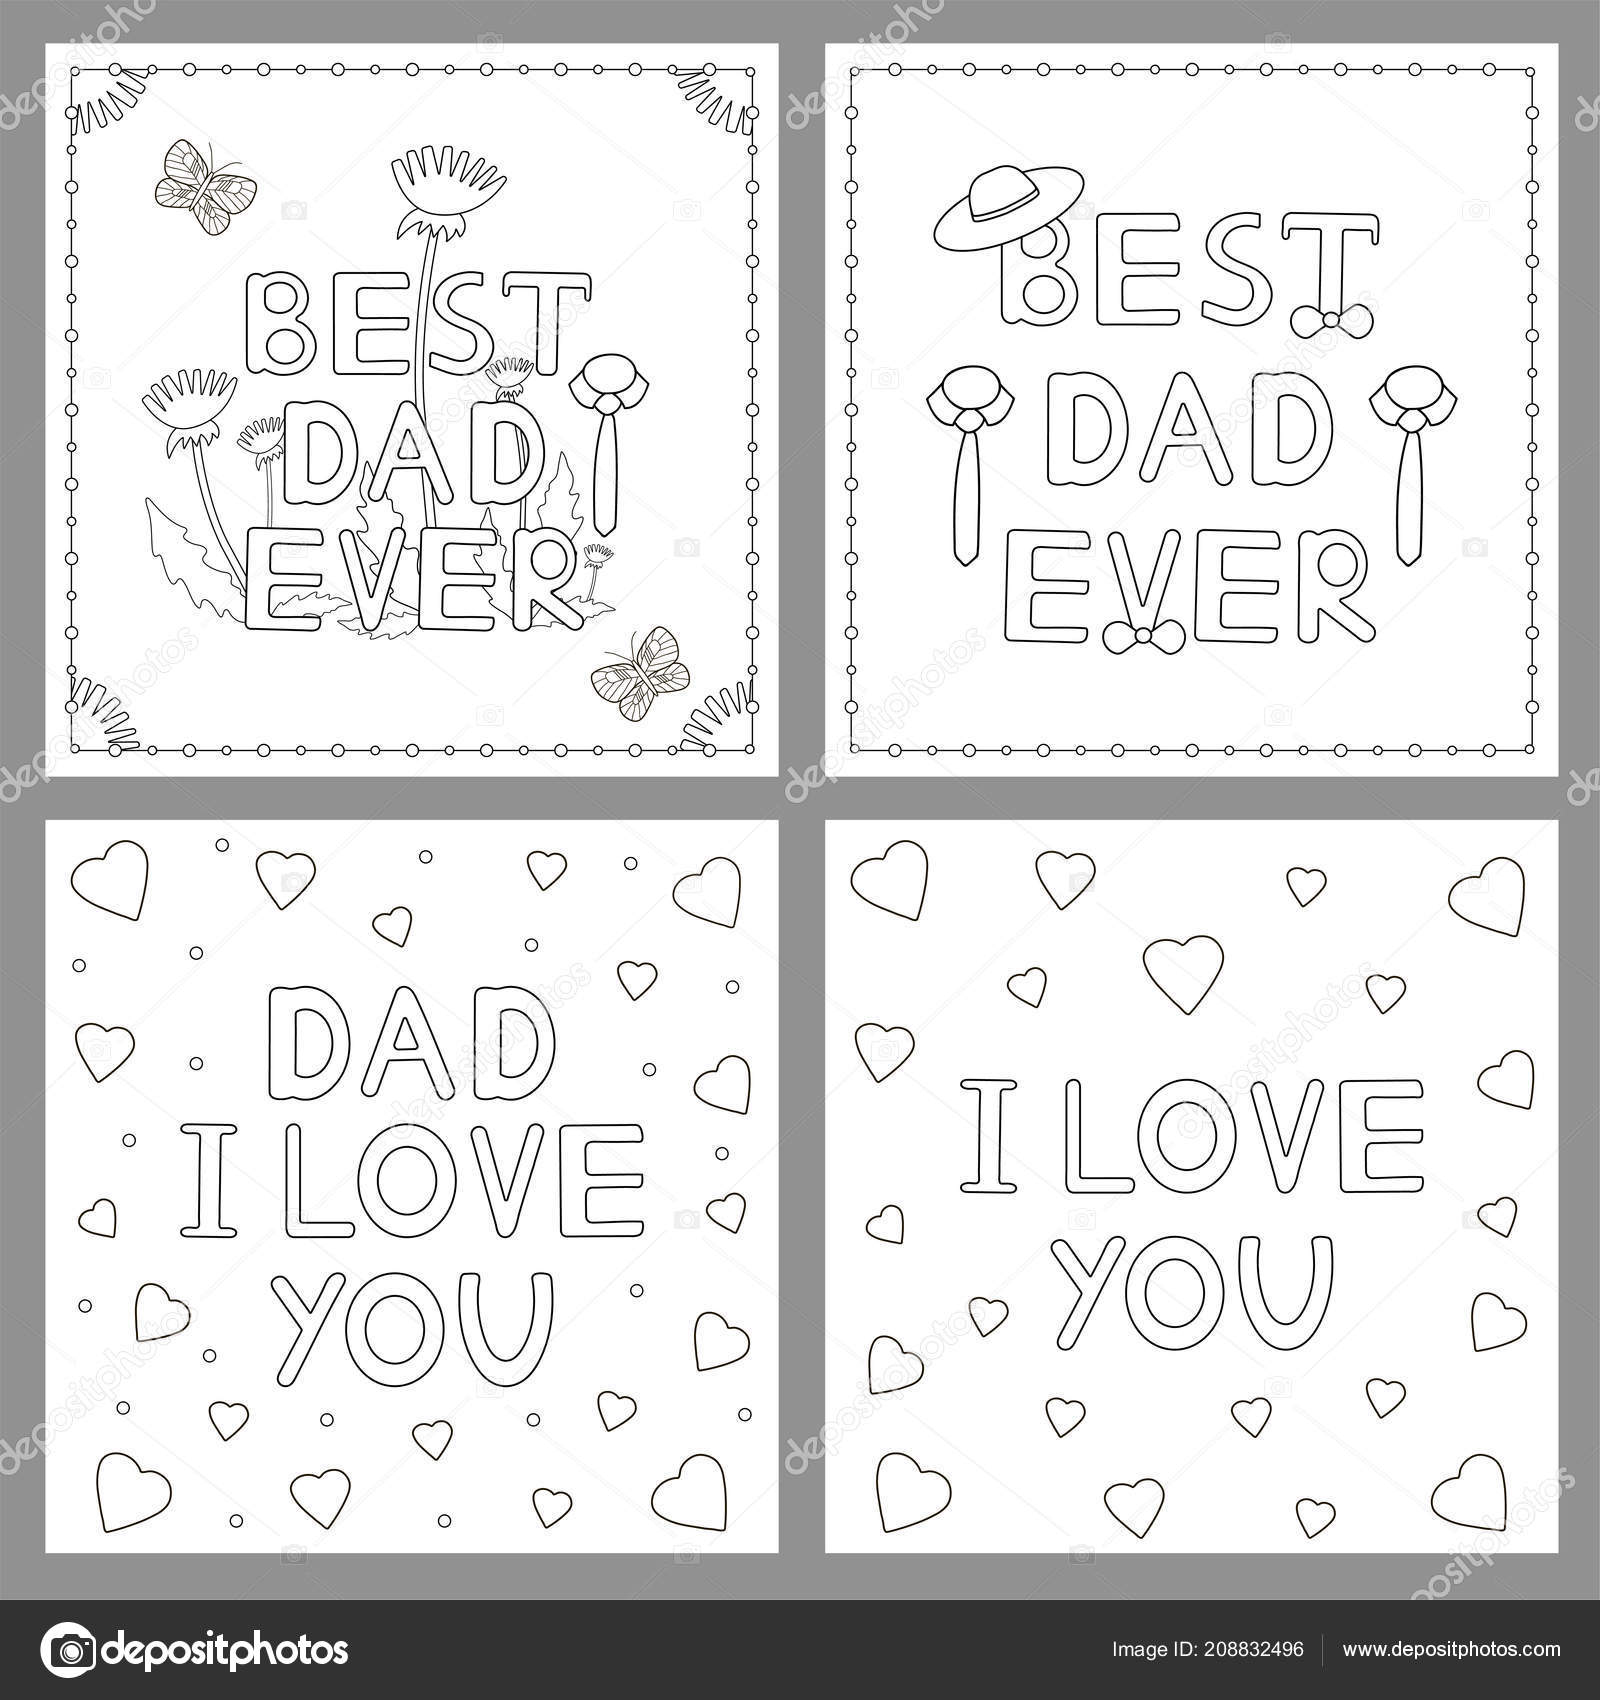 Cartes Postales Pour Papa Coloriage Illustration Vectorielle